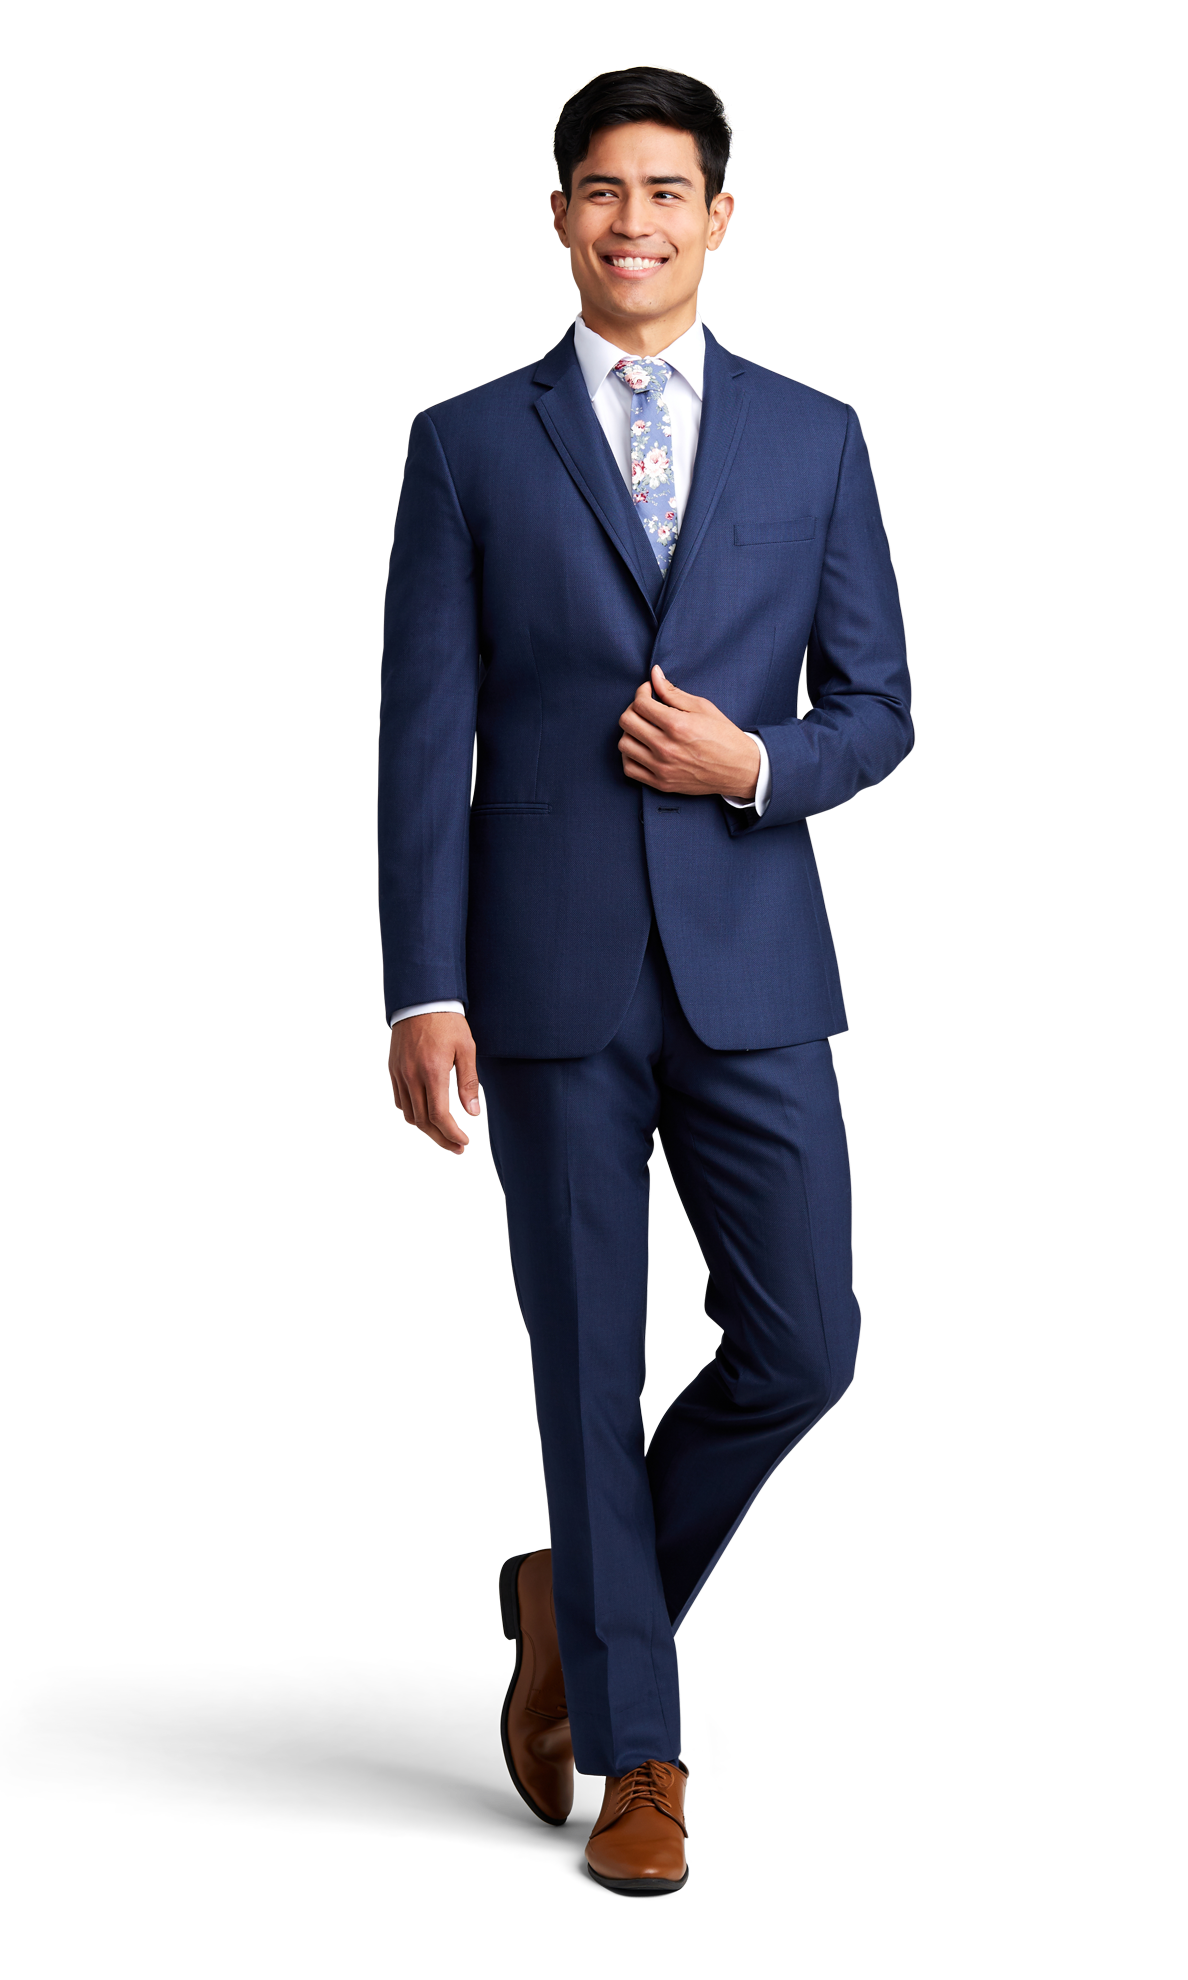 Dark Blue Notch Lapel Suit Online Rental 4